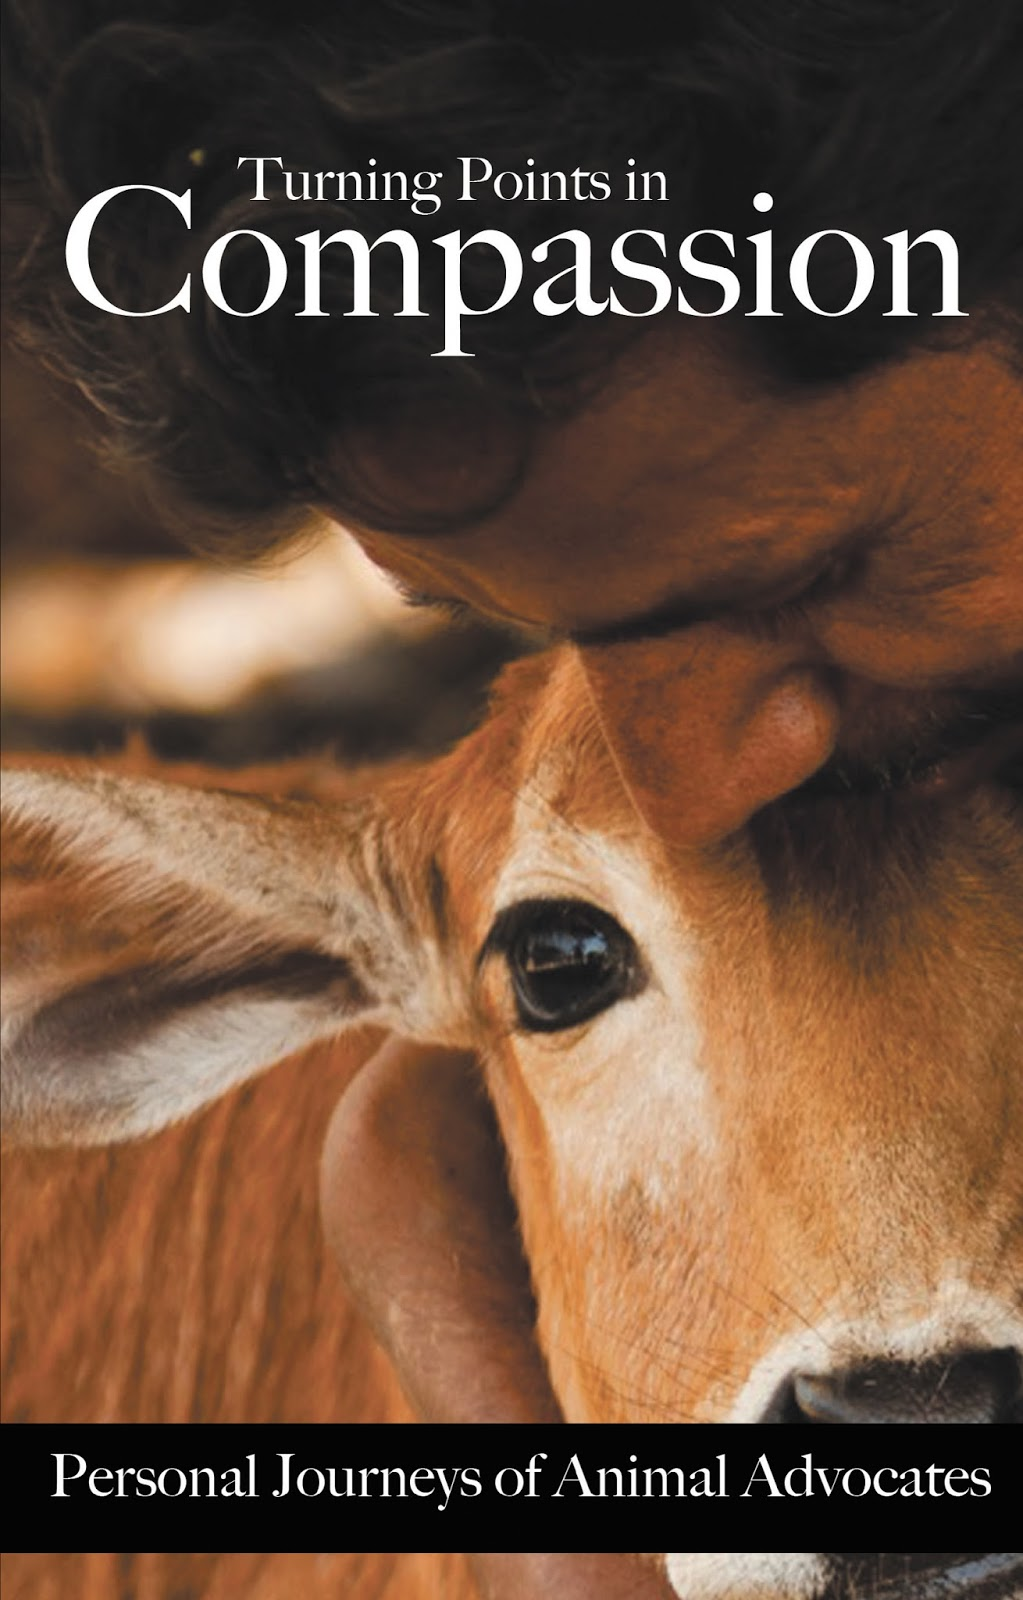 compassion imprisoned child essay contest Bible verses for compassion share tweet save the definition of compassion is a feeling of deep sympathy and sorrow for another who is hurting, in pain, or has misfortune and is accompanied by a strong desire to help the suffering.